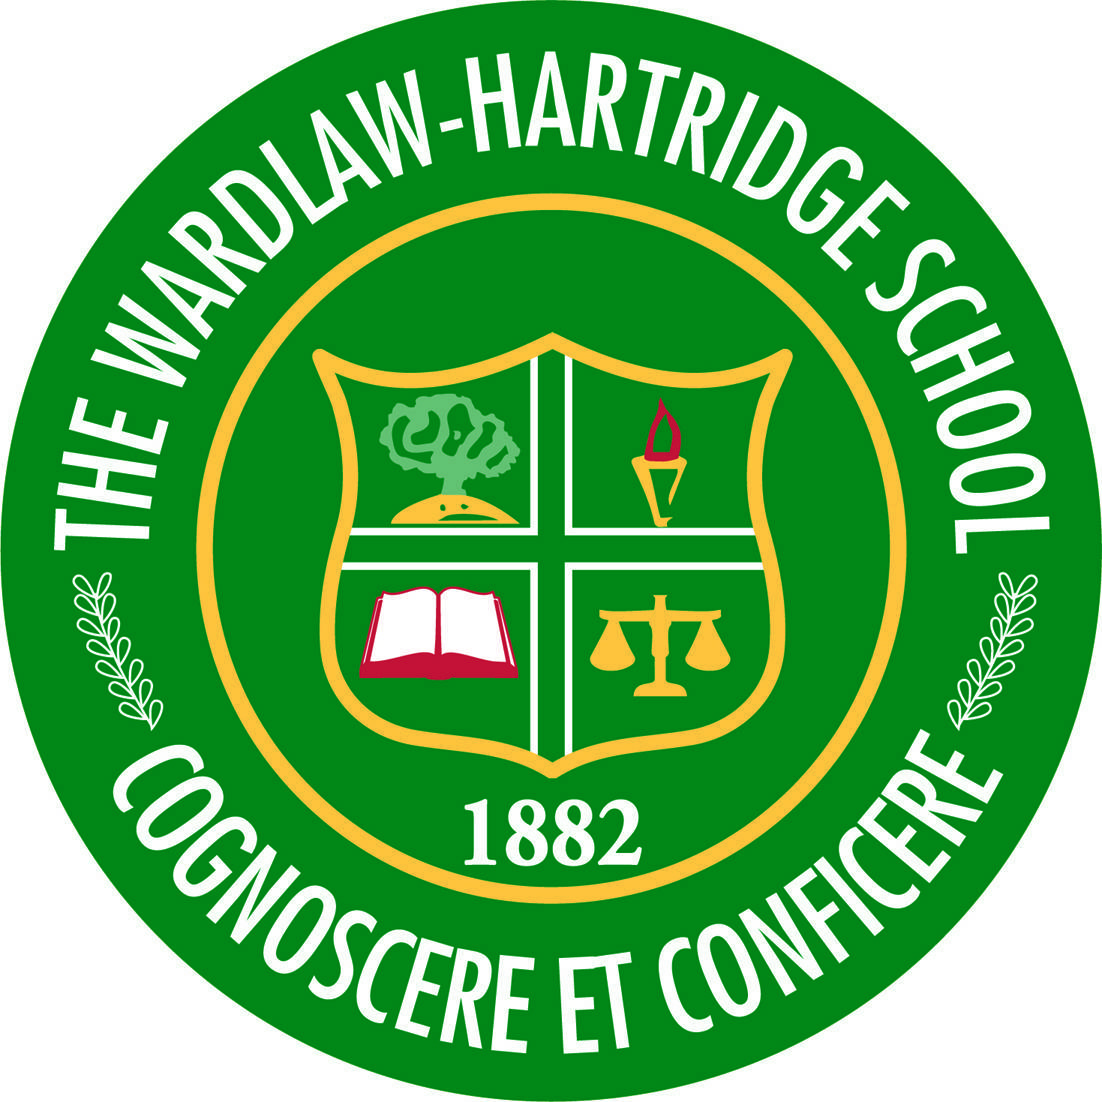 57a0379349a31b20fb44_Wardlaw_Hartridge_logo.jpg